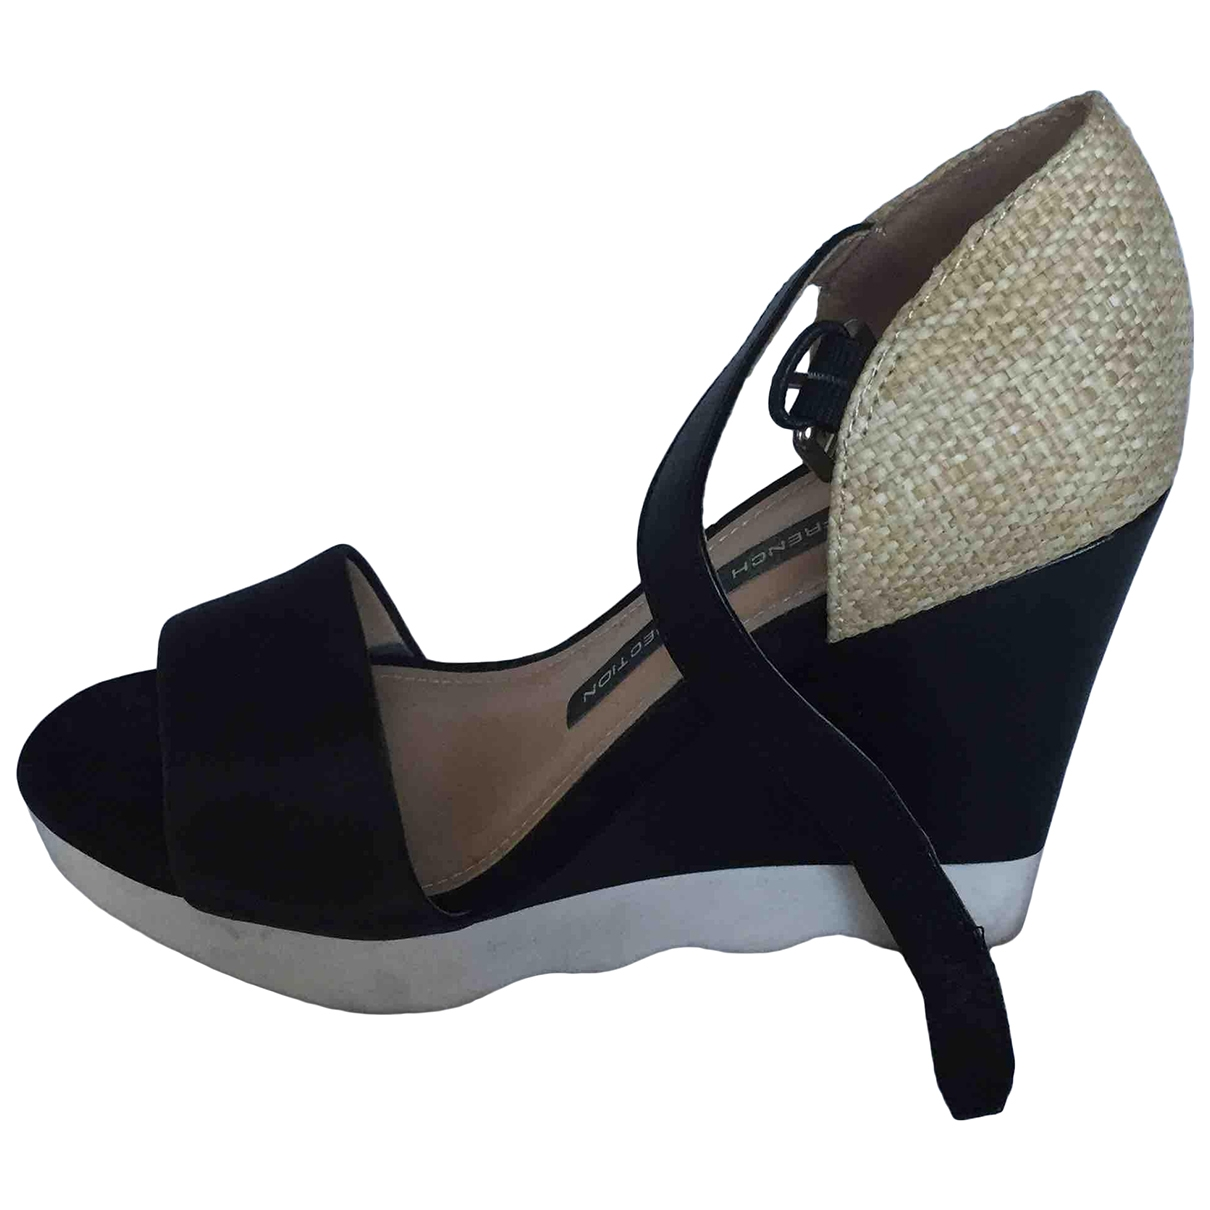 French Connection \N Black Leather Sandals for Women 3 UK